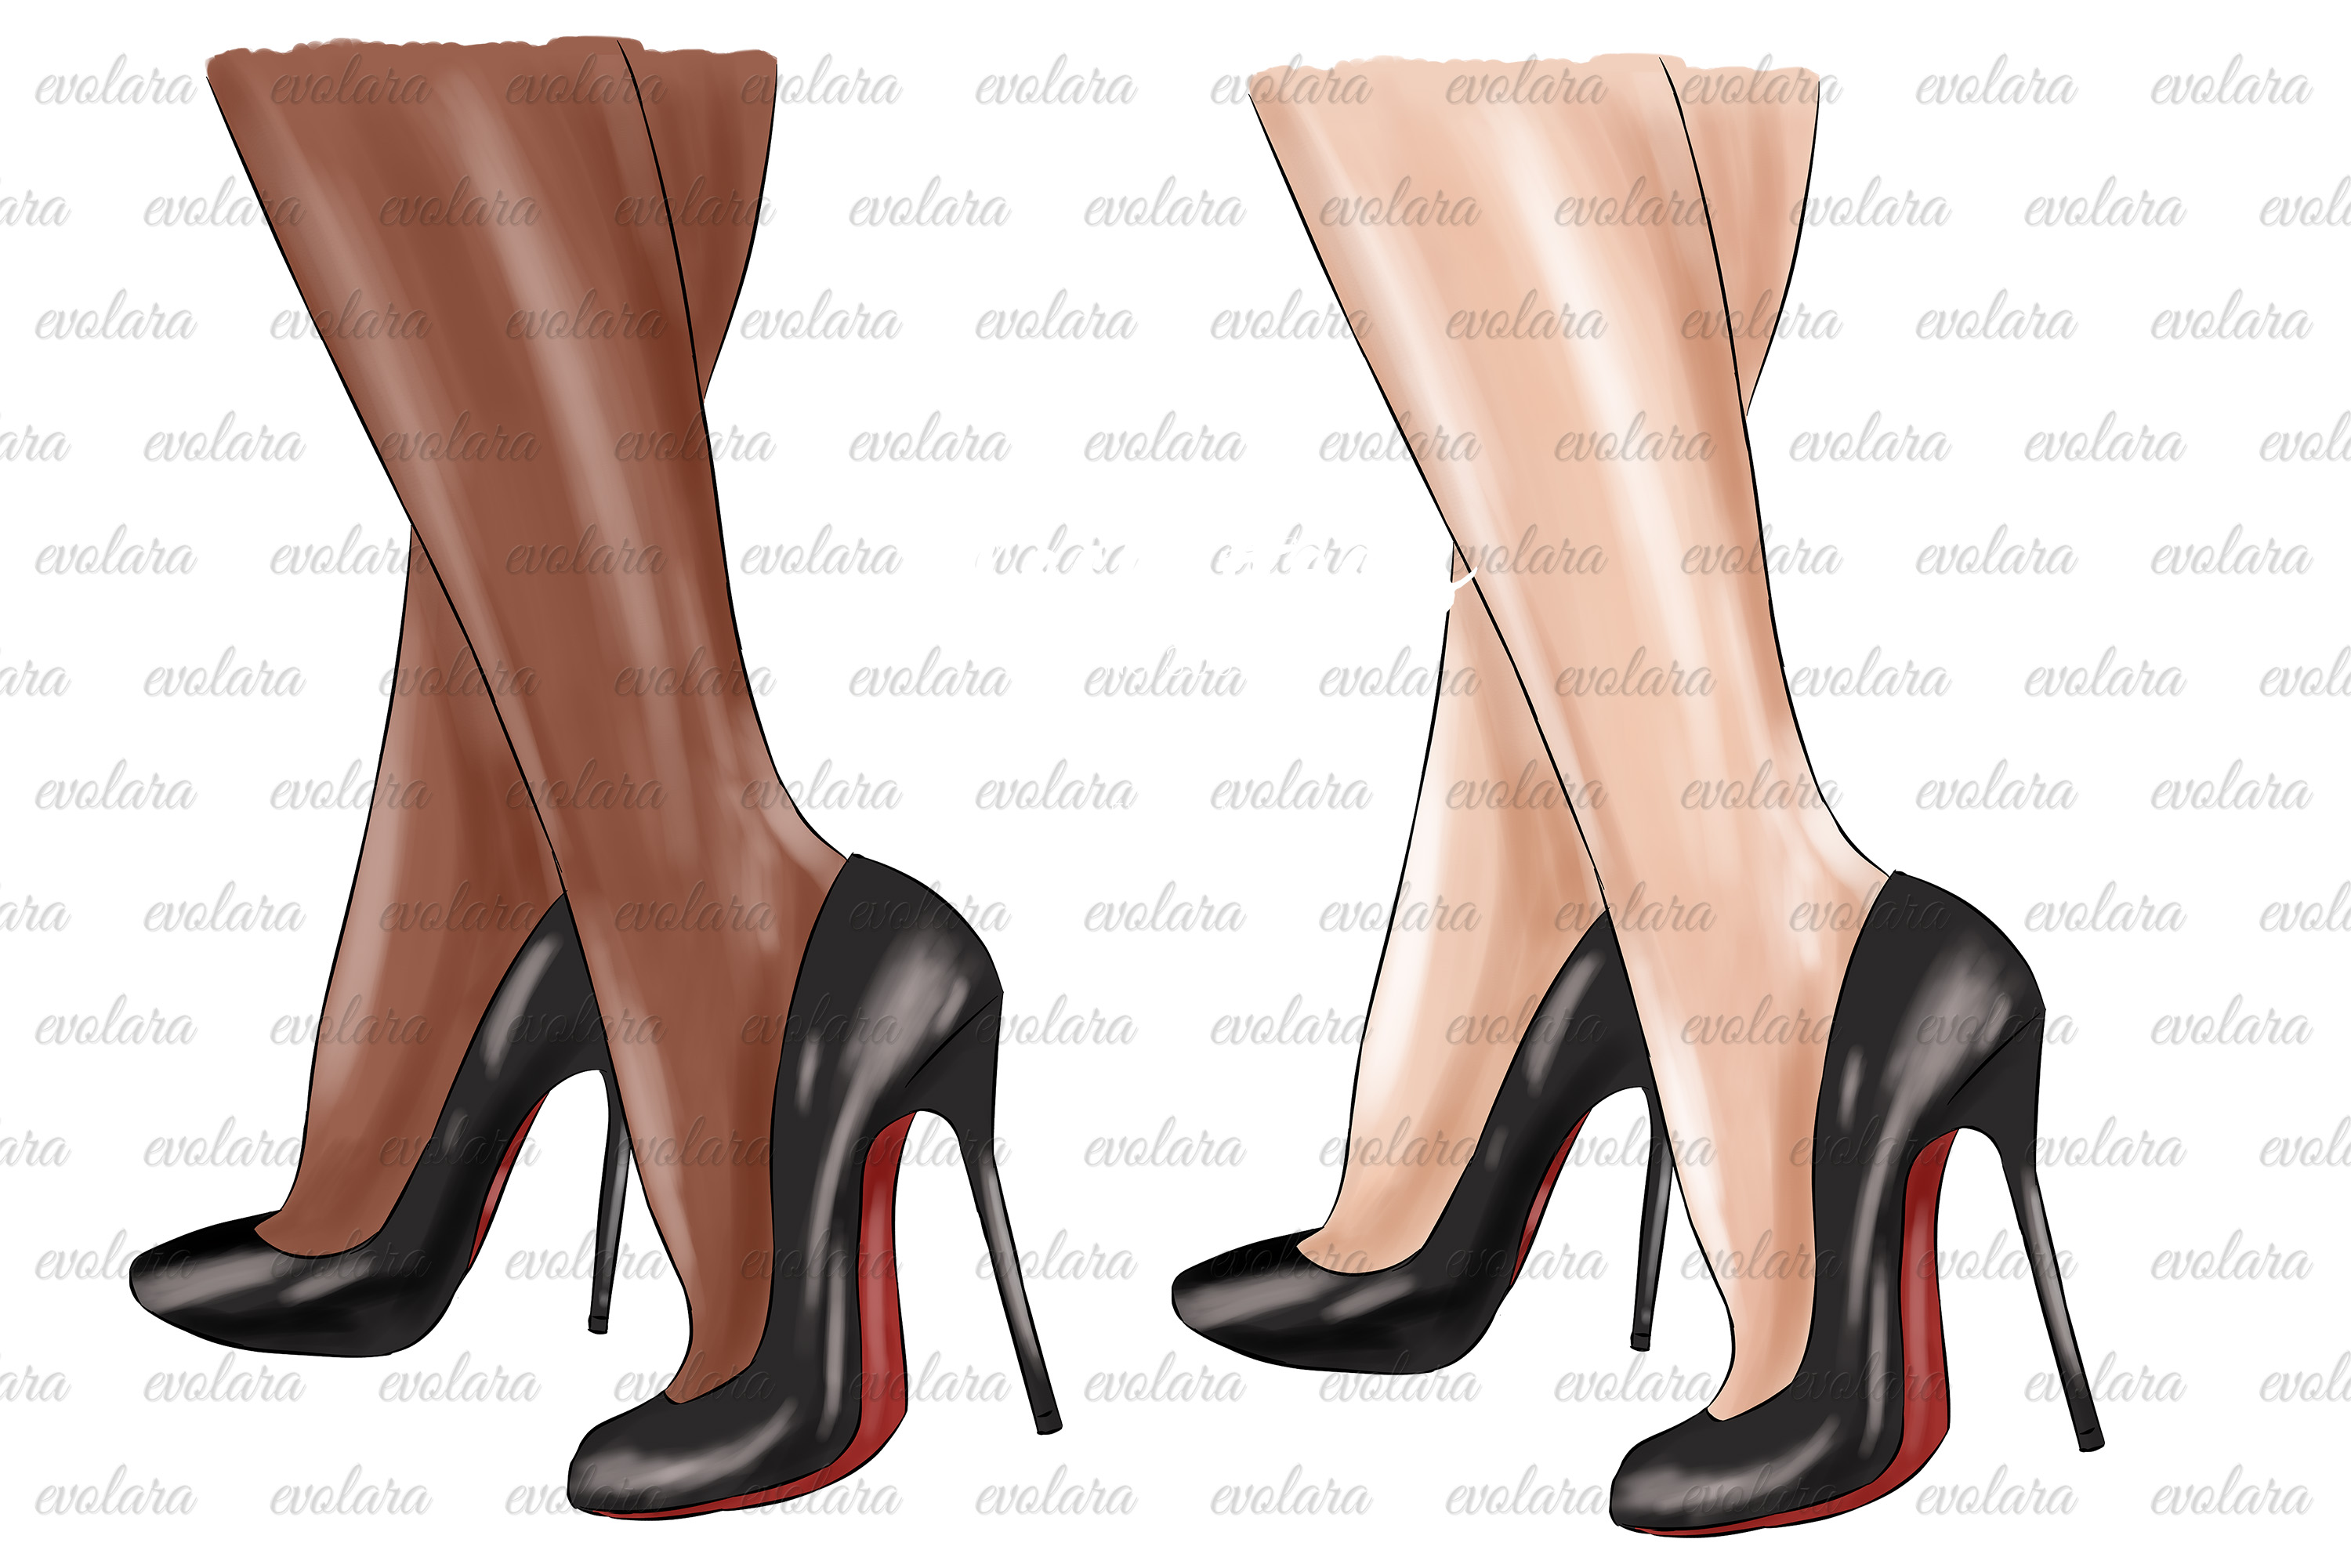 Black Stiletto Black High Heels Shoes Clipart Fashion example image 2